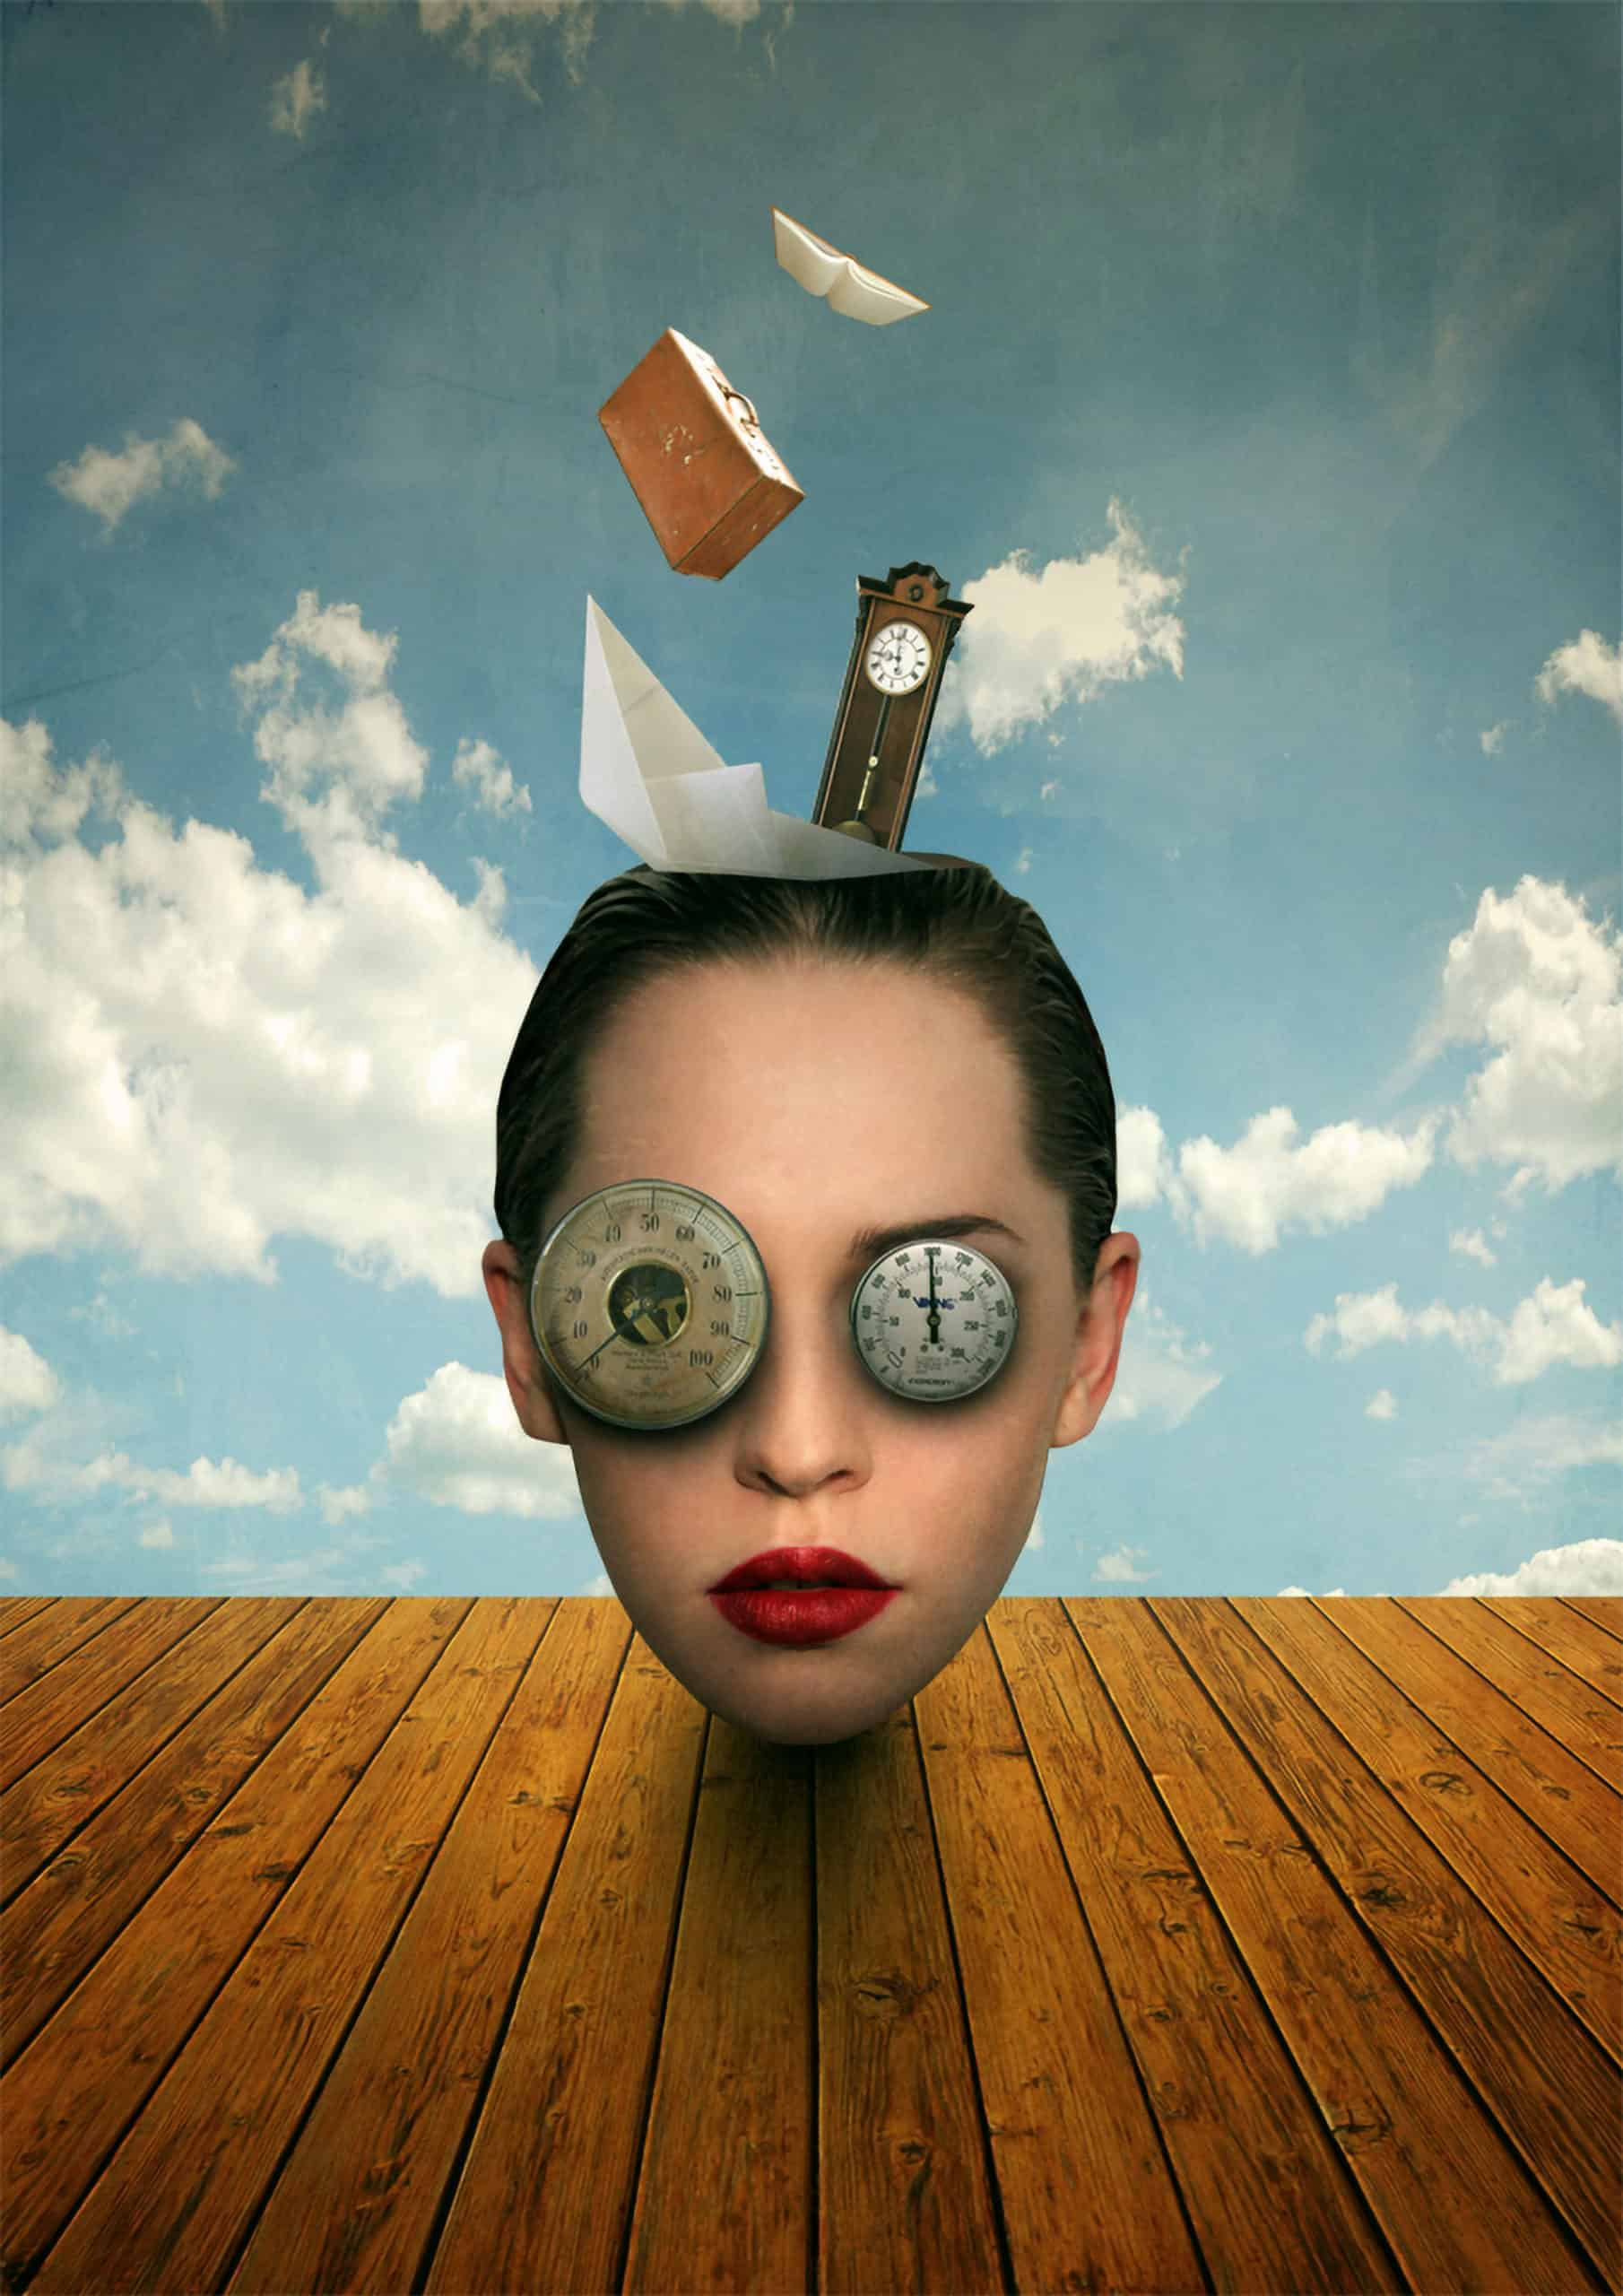 Create This Surreal Representation of the Mind Artwork in Photoshop